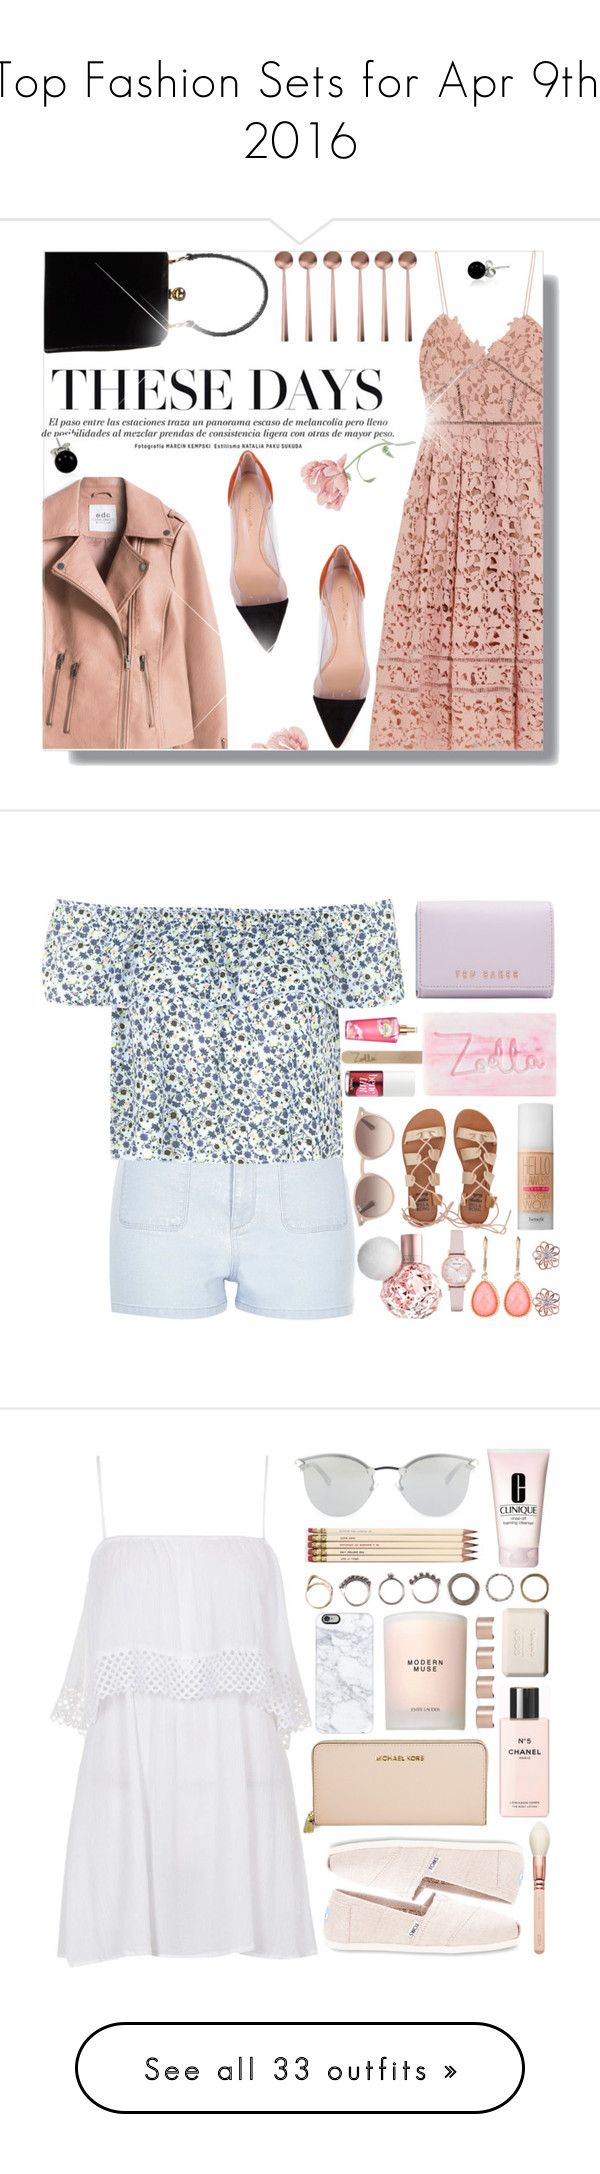 """""""Top Fashion Sets for Apr 9th, 2016"""" by polyvore ❤ liked on Polyvore featuring self-portrait, Gianvito Rossi, Dolce&Gabbana, canvas, Bling Jewelry, River Island, Topshop, Ted Baker, Victoria's Secret and Benefit"""